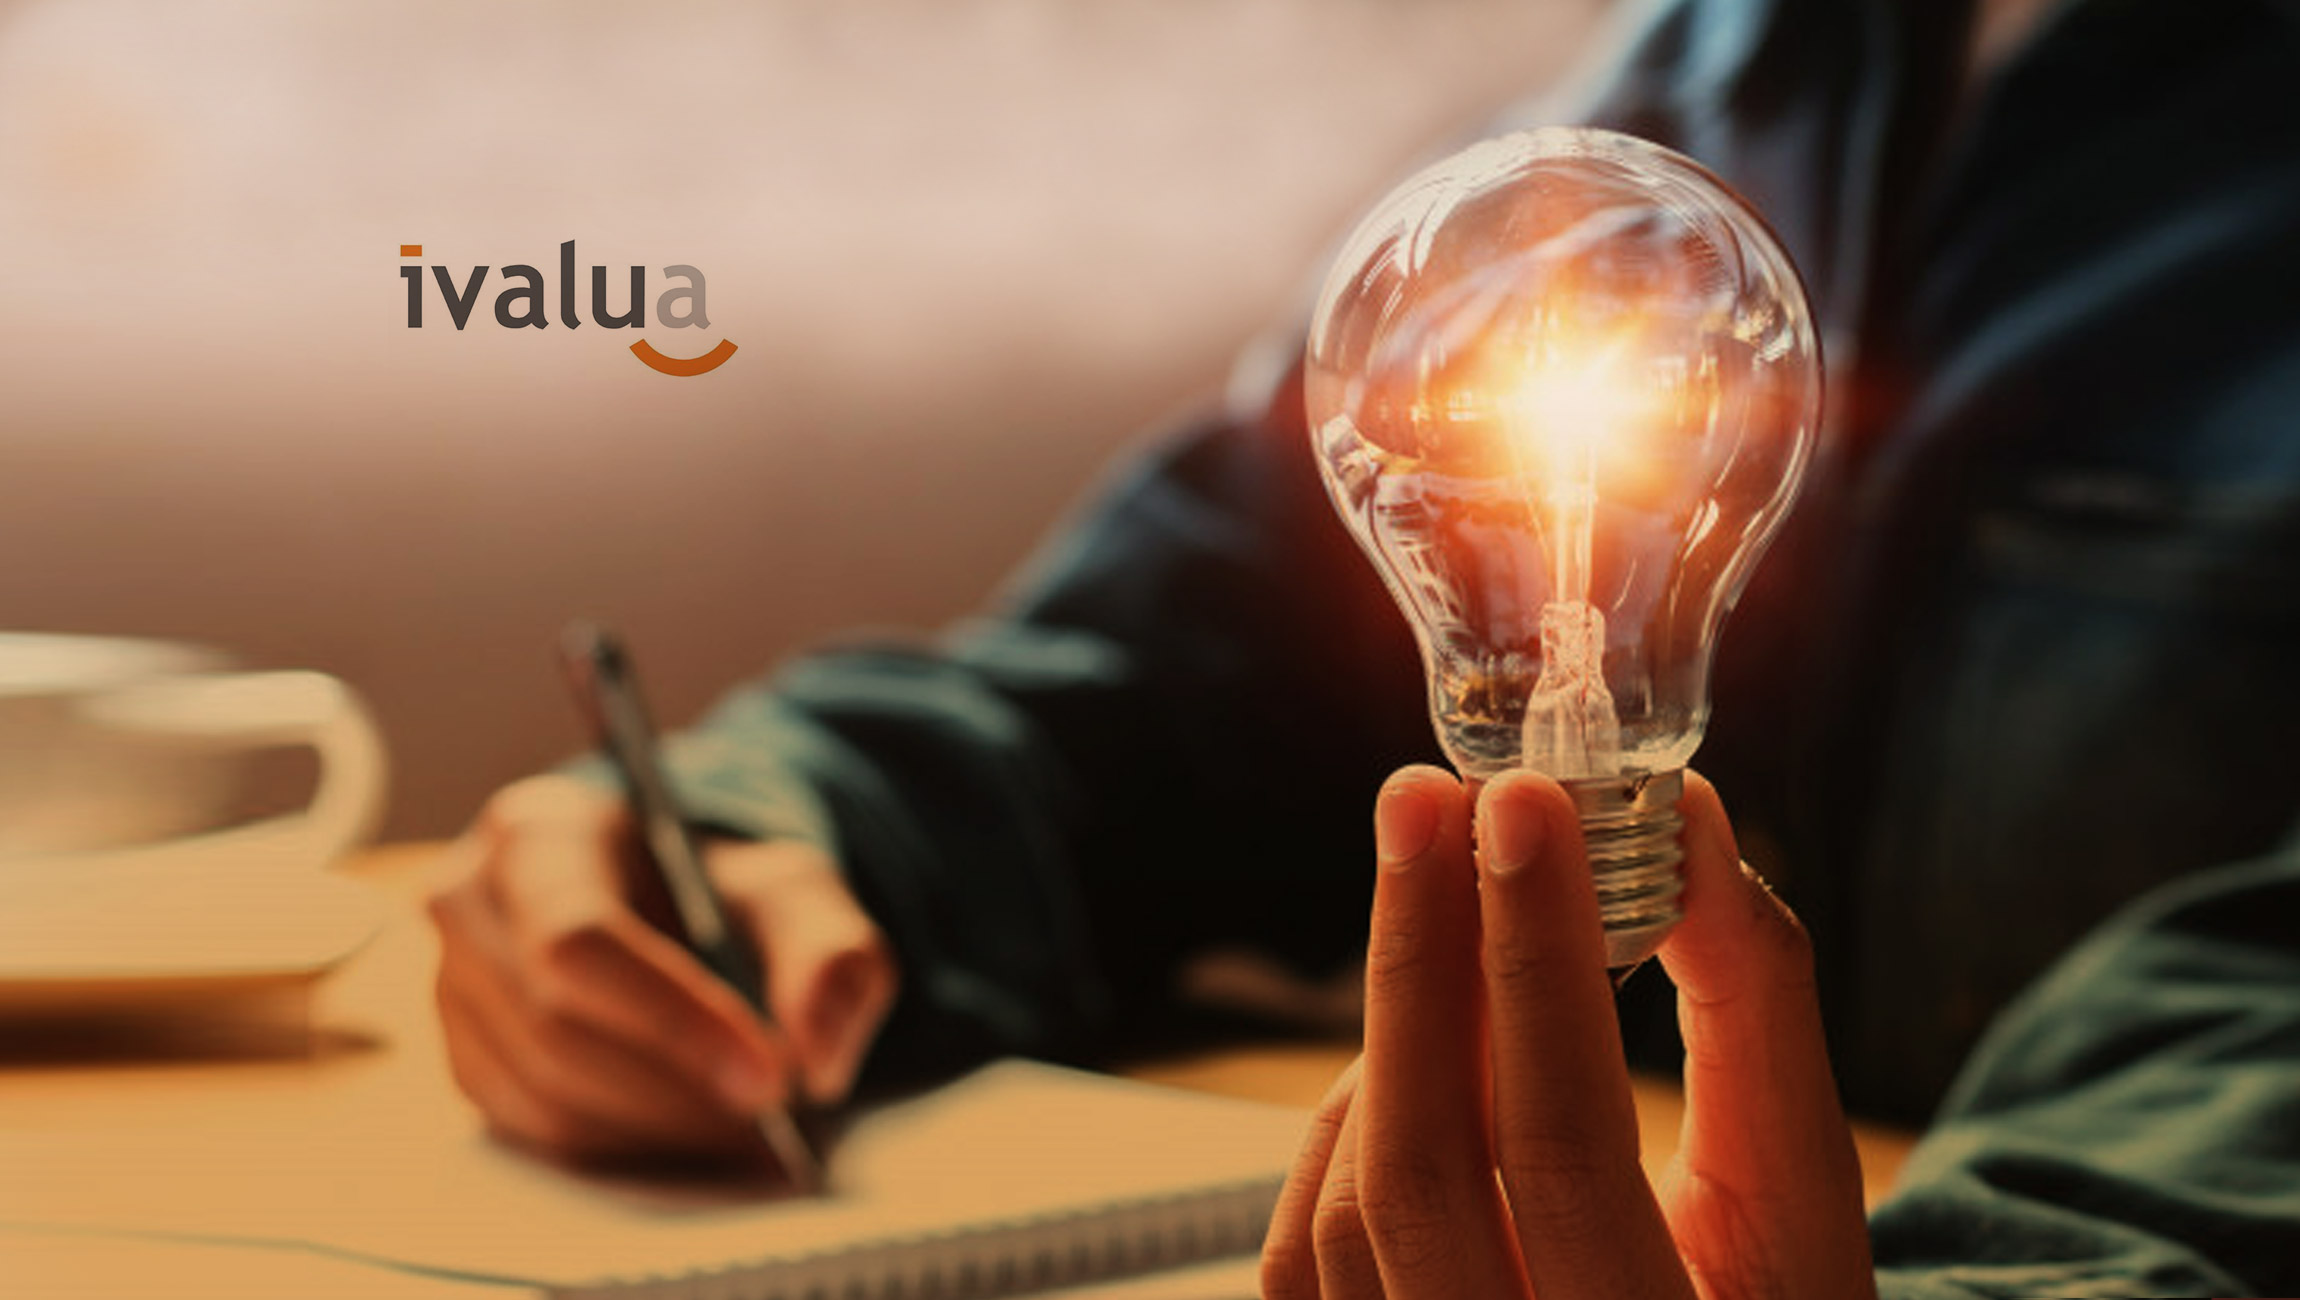 Ivalua Exceeds $1B Valuation in New Funding Round to Accelerate Global Expansion & Technology Innovation